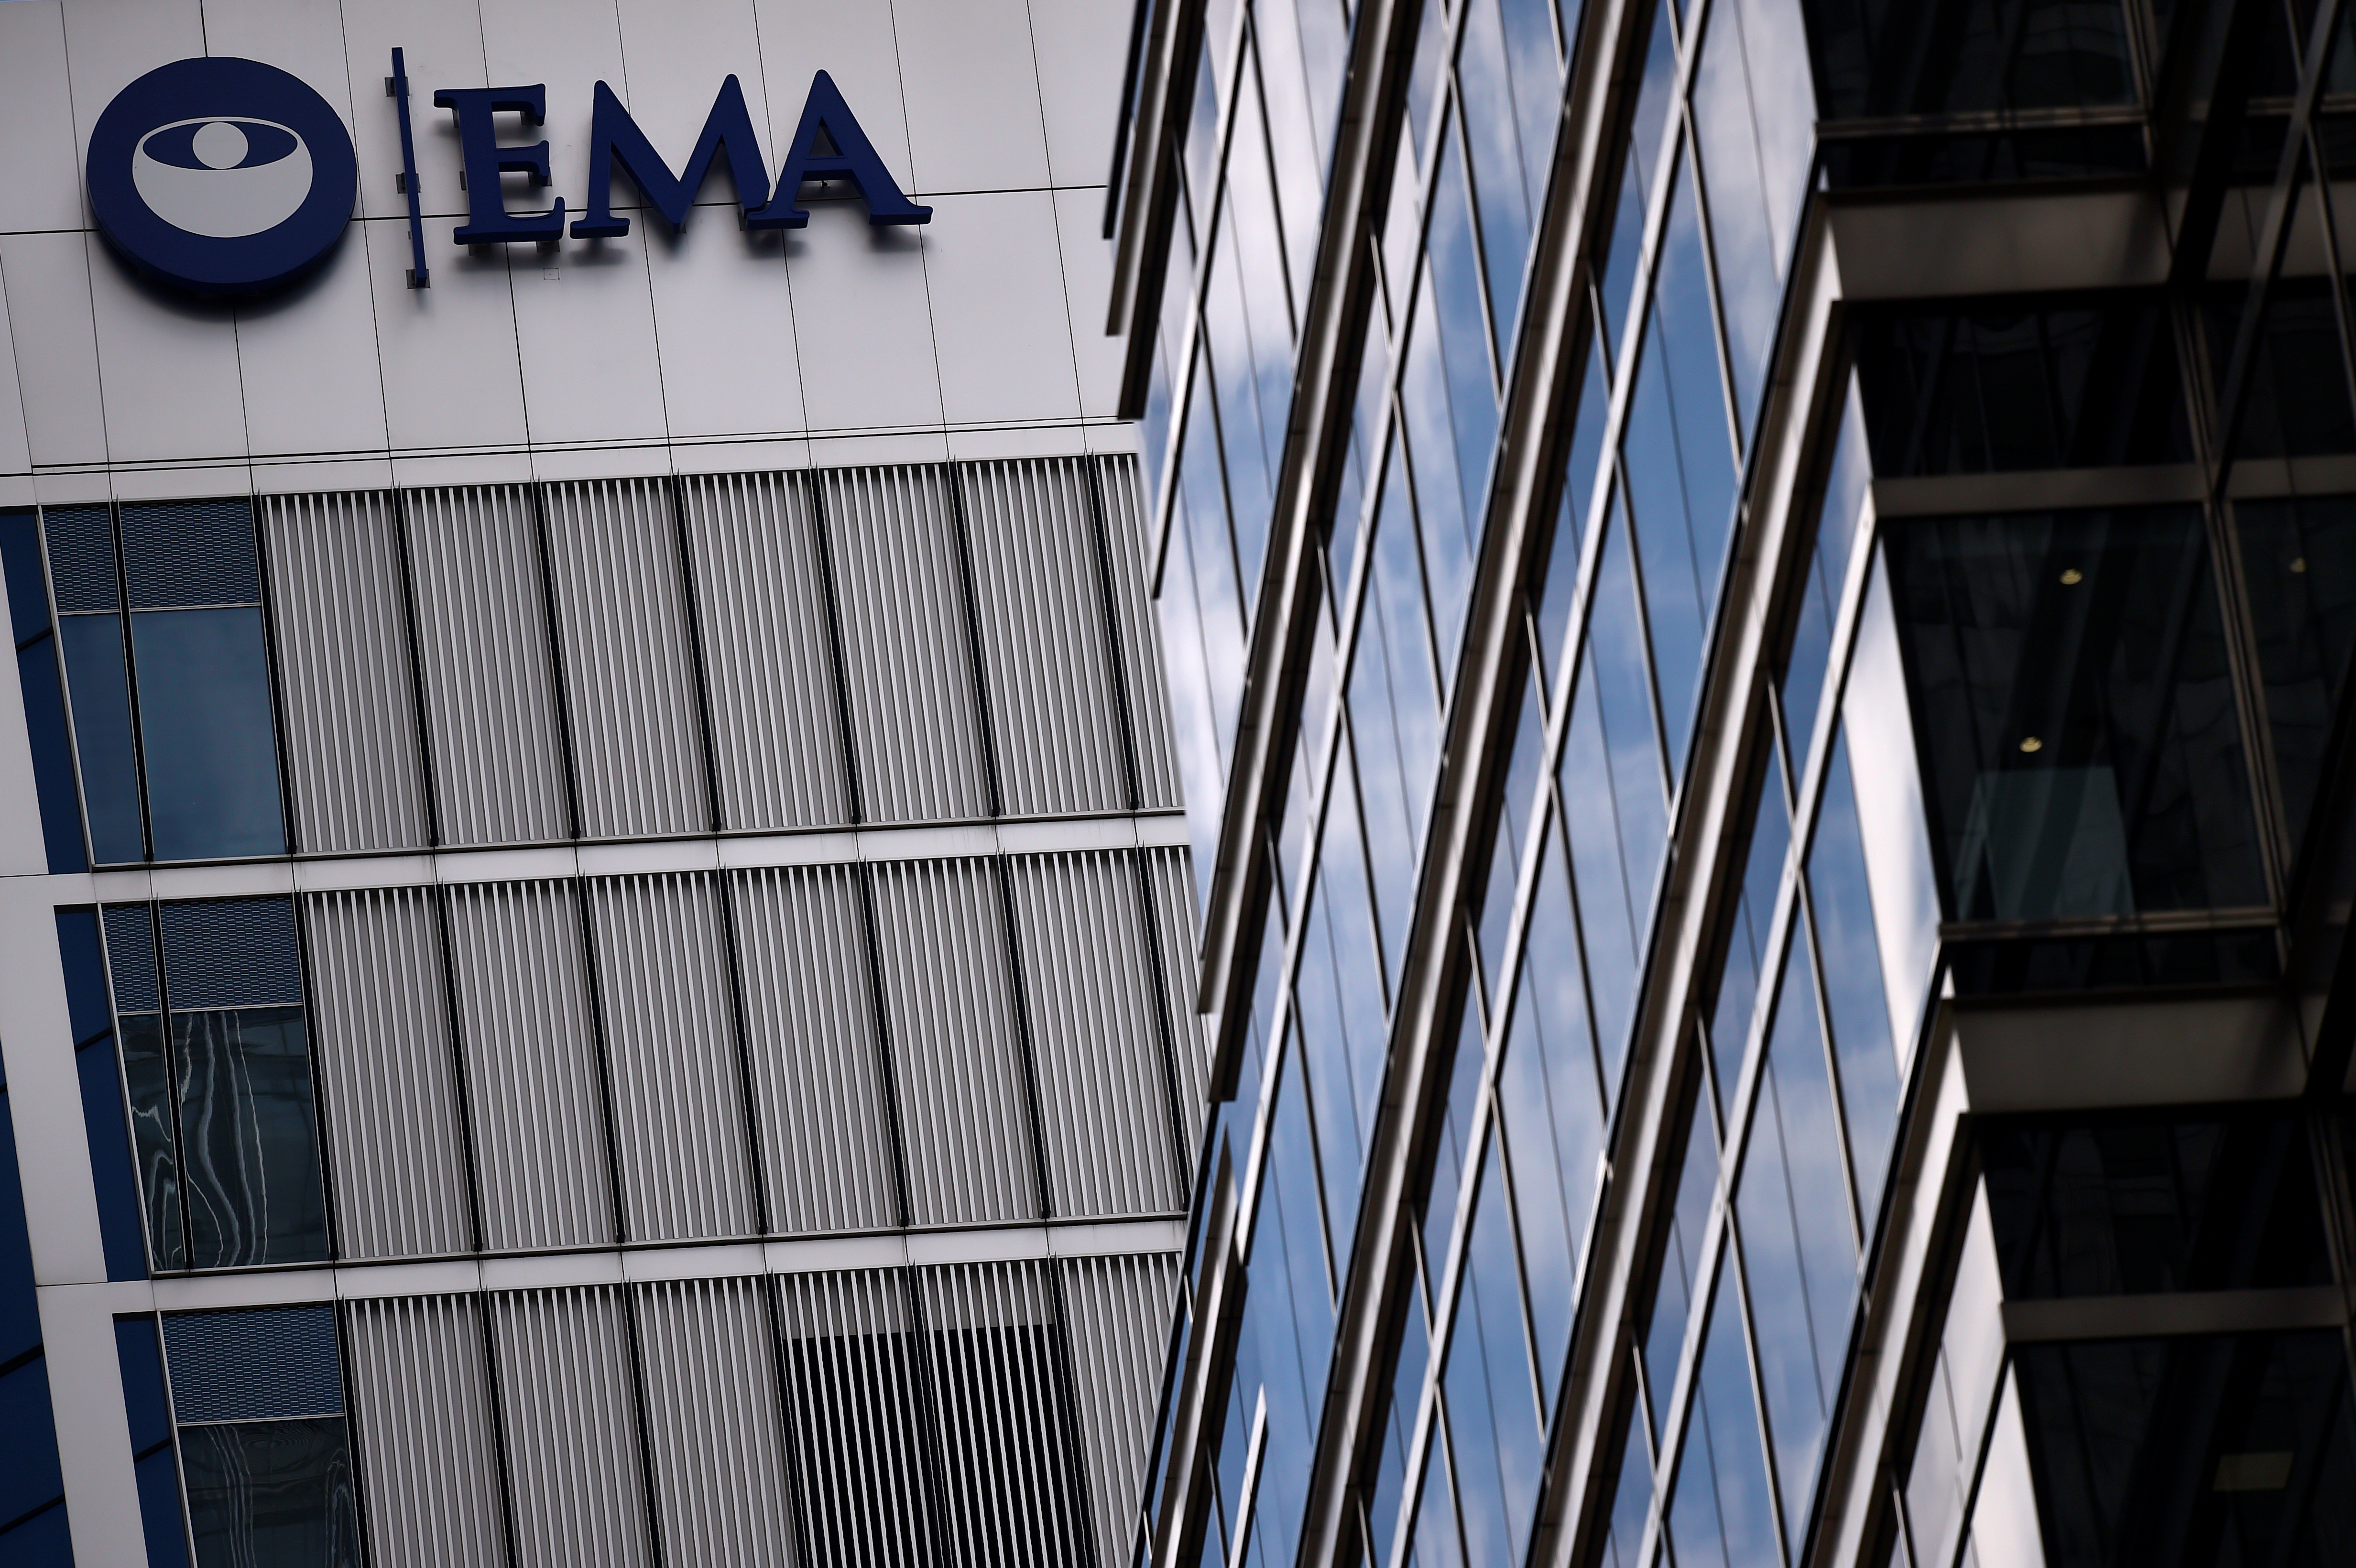 The headquarters of the European Medicines Agency (EMA), is seen in London, Britain, April 25, 2017. REUTERS/Hannah McKay/File Photo